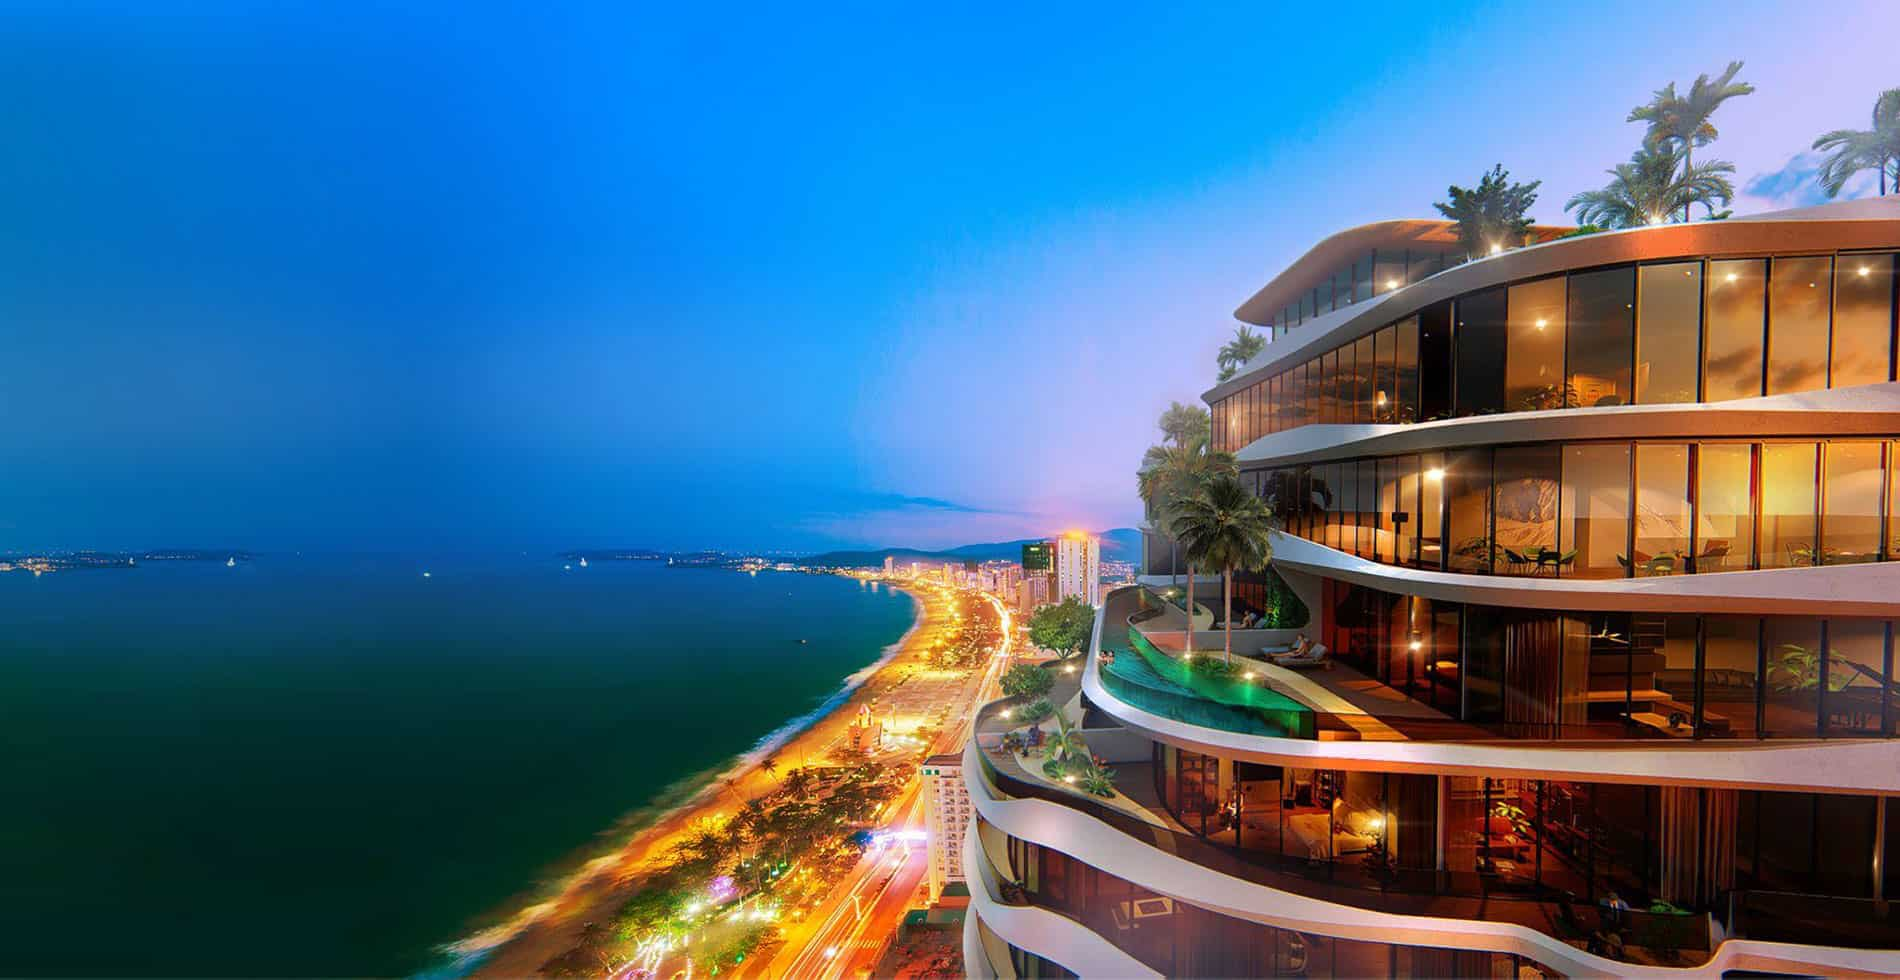 The Aston Luxury Residence Nha Trang